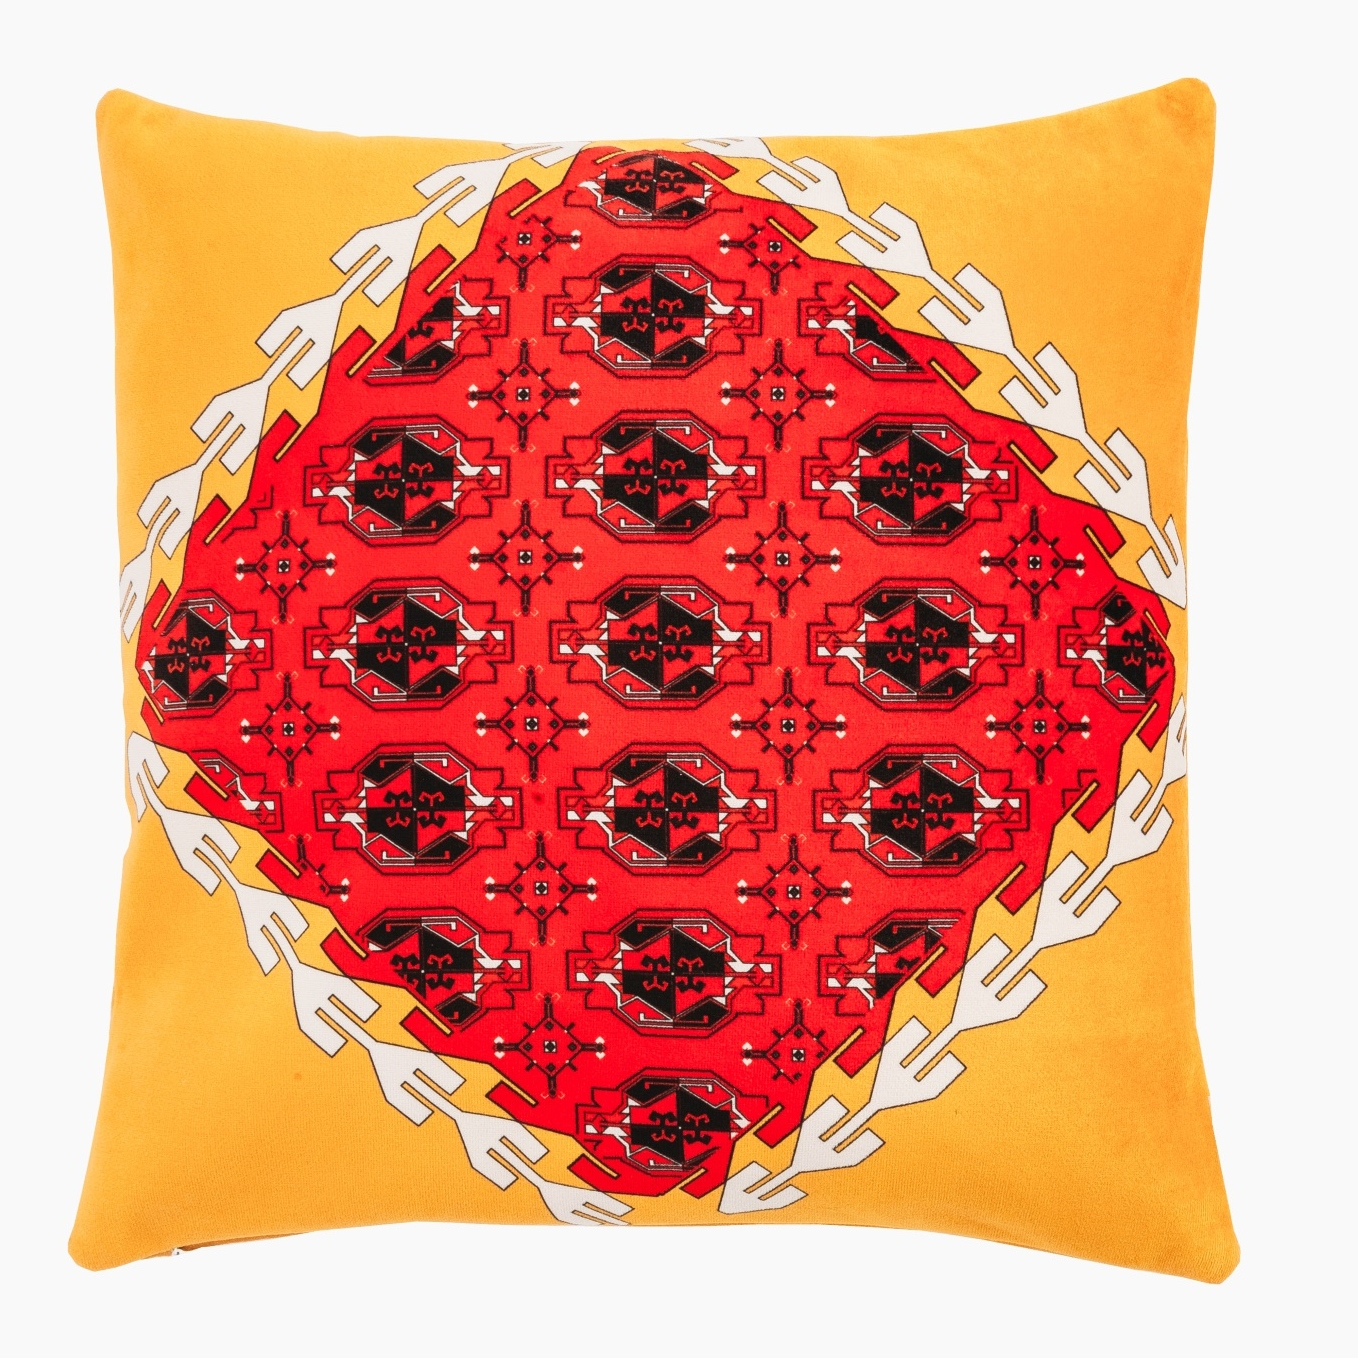 Kilimoderno Turkmen Cushion